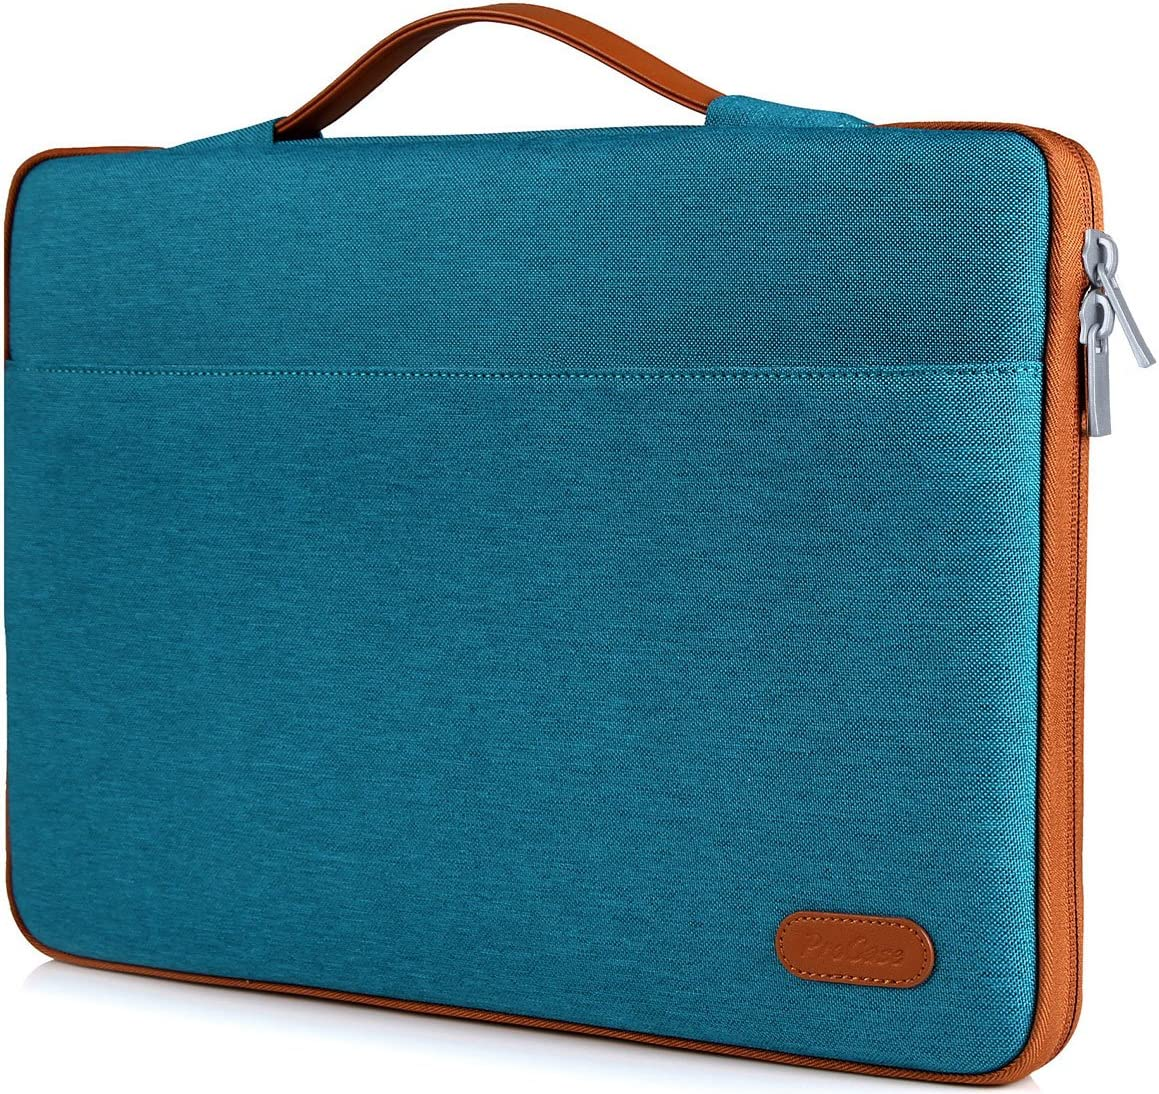 "ProCase 12-12.9 inch Sleeve Case Bag for Surface Pro X 2017/Pro 7 6 4 3, MacBook Pro 13, iPad Pro Protective Carrying Cover Handbag for 11"" 12"" Lenovo Dell Toshiba HP ASUS Acer Chromebook -Teal"